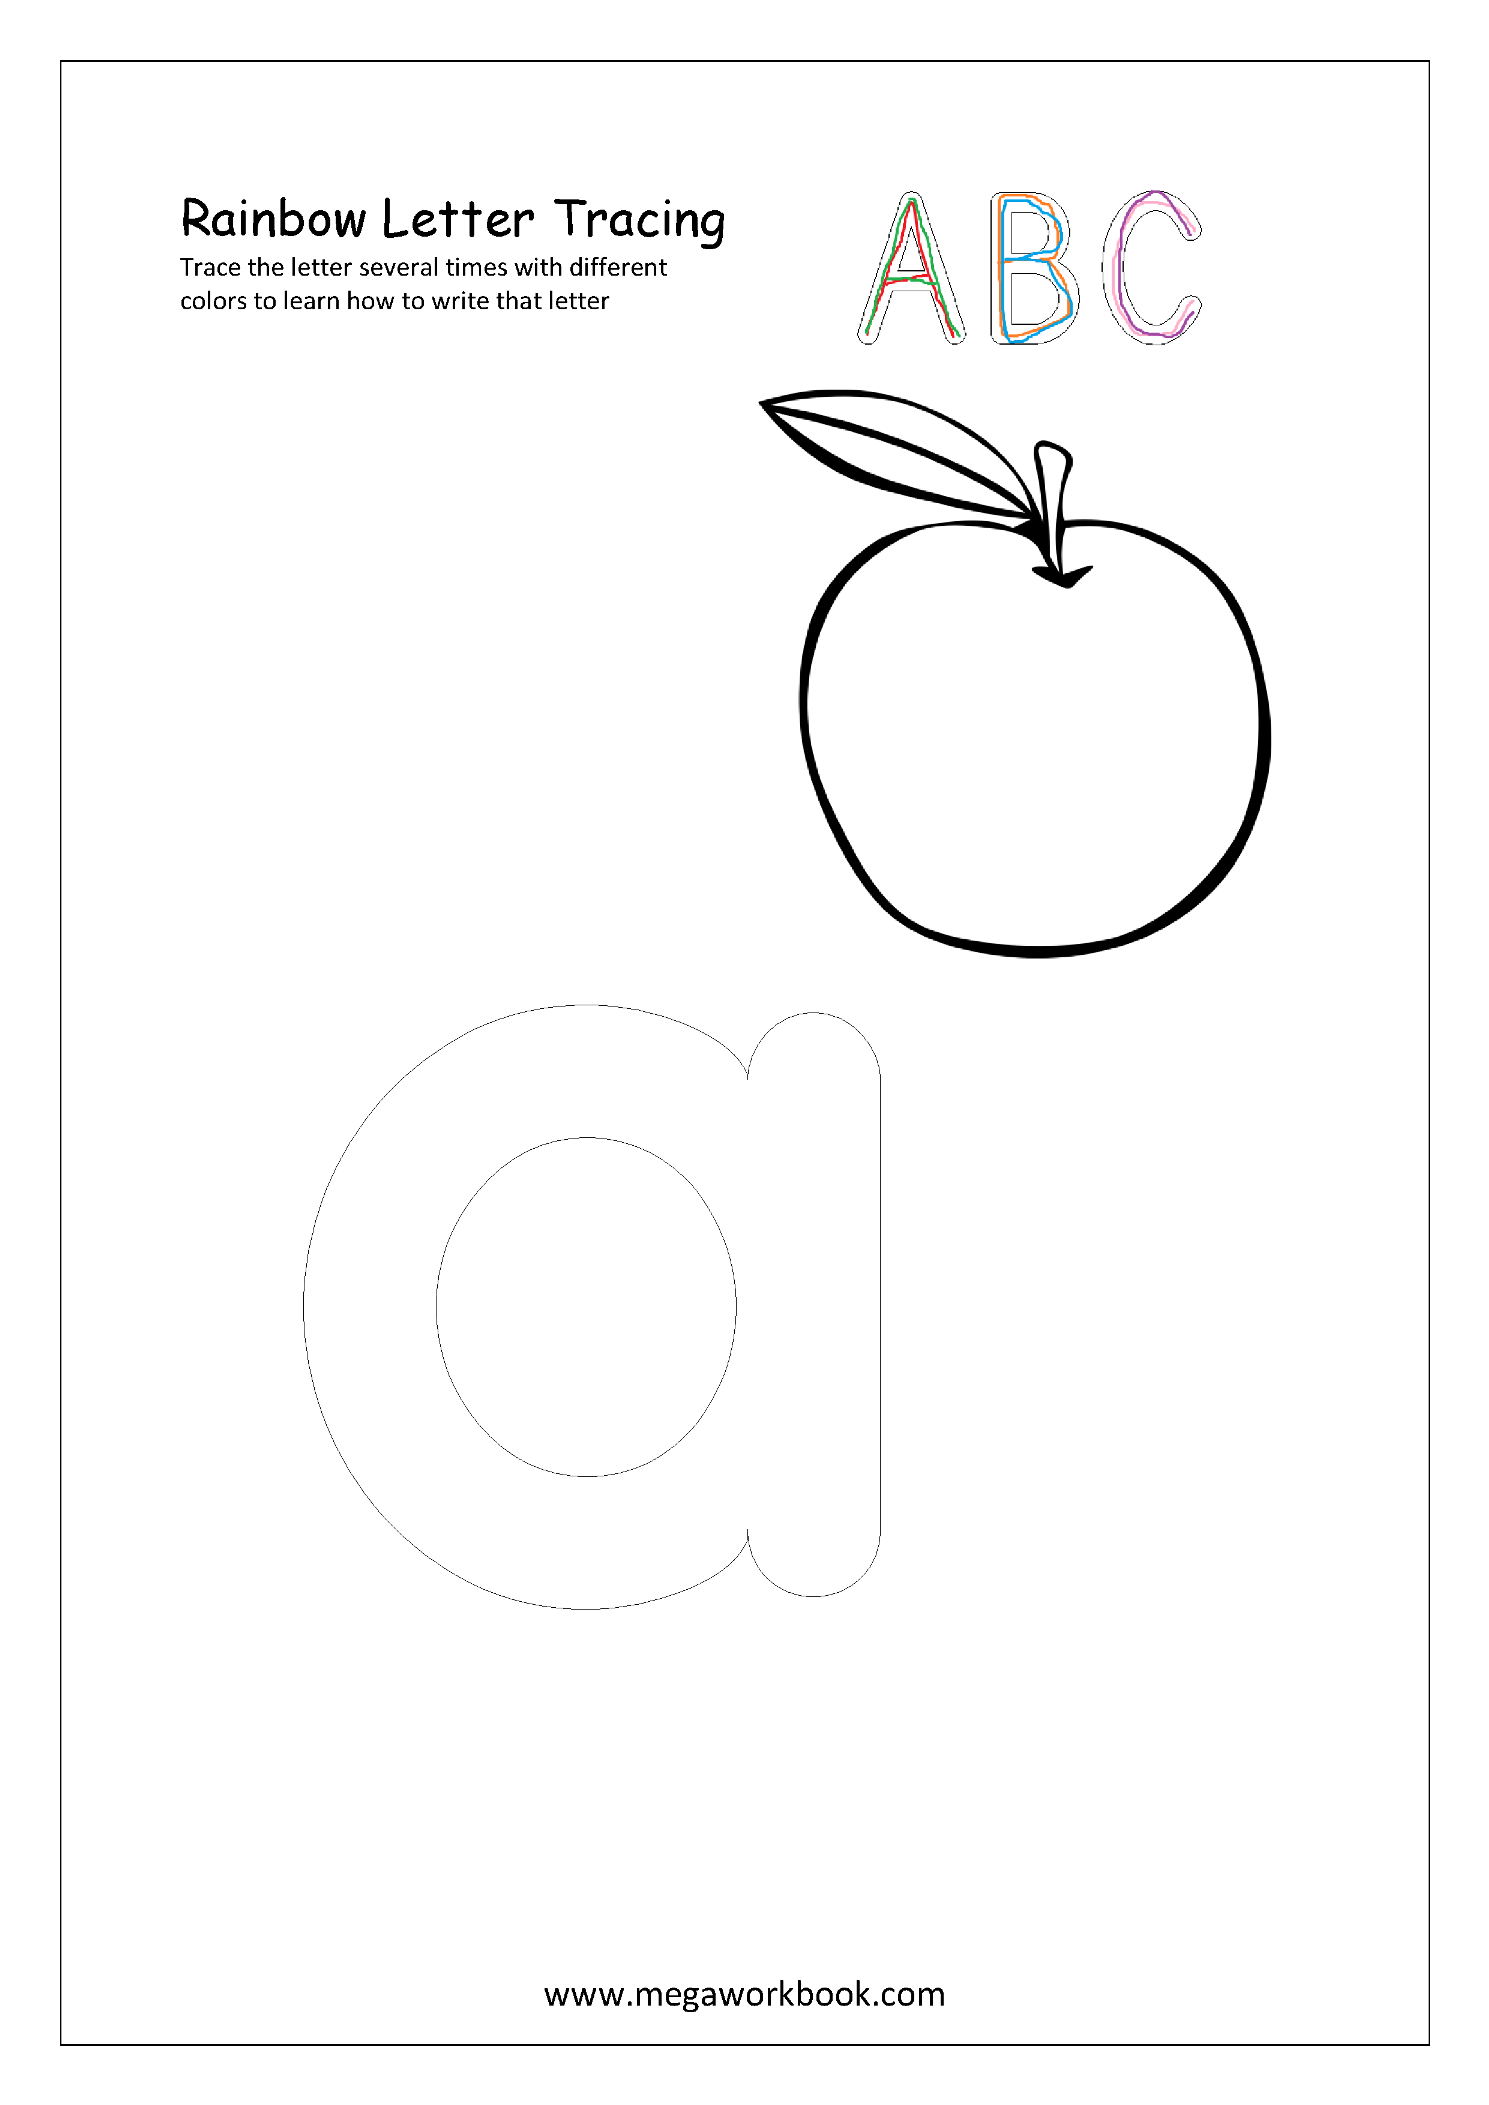 Rainbow Writing Letters Worksheets